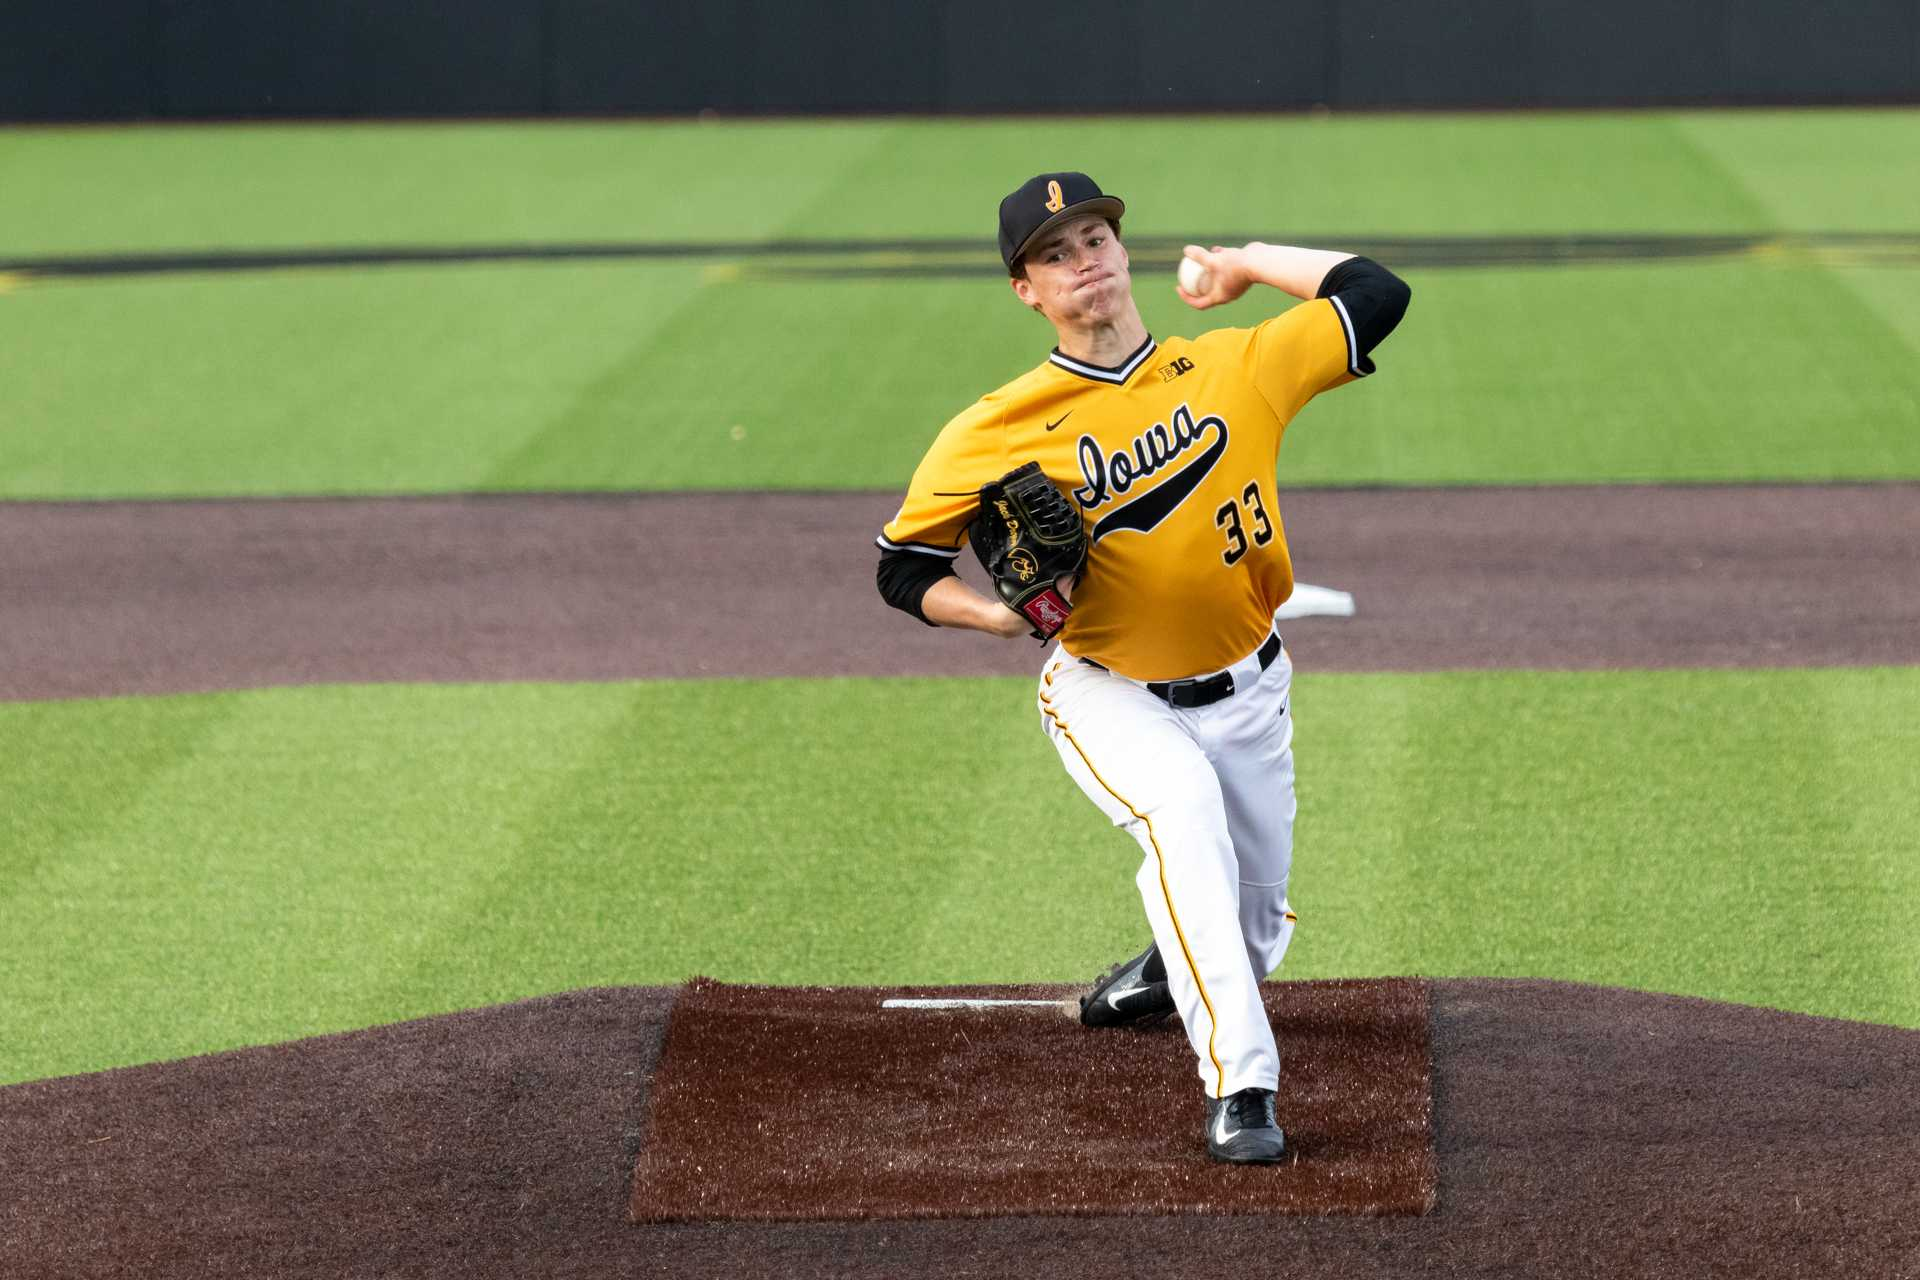 University of Iowa baseball player Jack Dreyer winds up to pitch during a game against Penn State University on Saturday, May 19, 2018. The Hawkeyes defeated the Nittany Lions 8-4. (David Harmantas/The Daily Iowan)